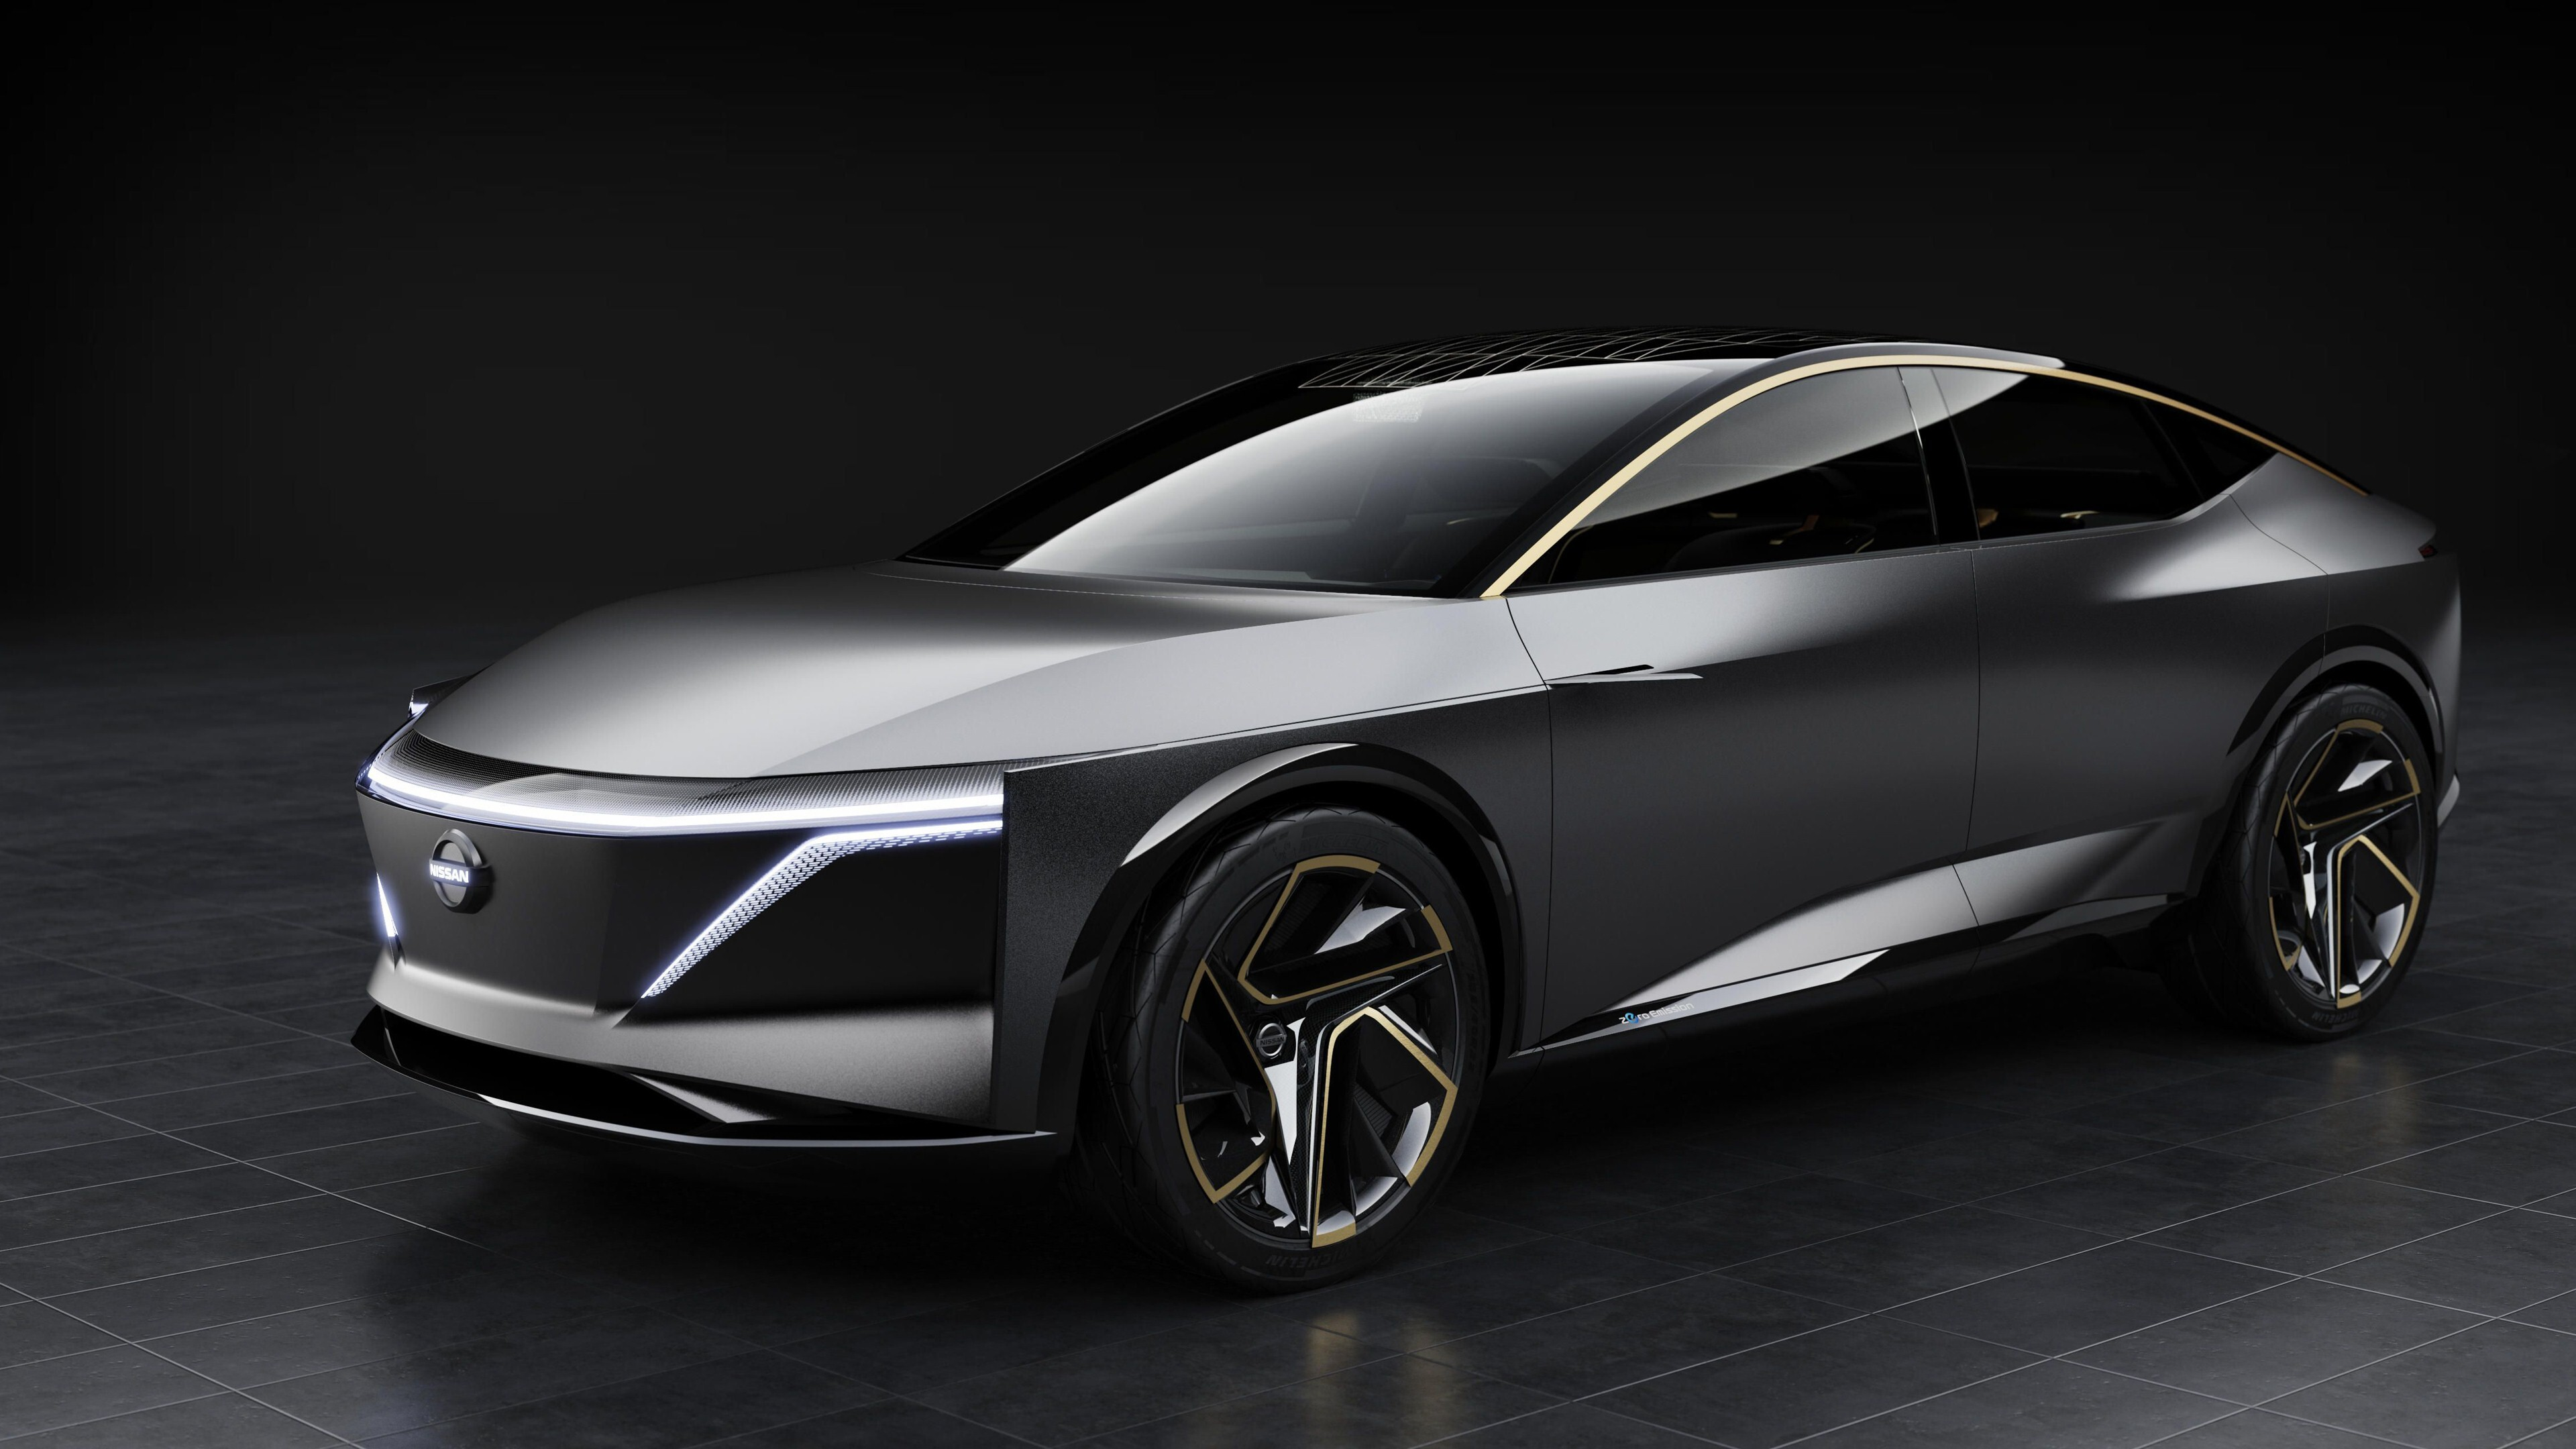 4K Wallpaper of Nissan IMs EV Concept Car | HD Wallpapers